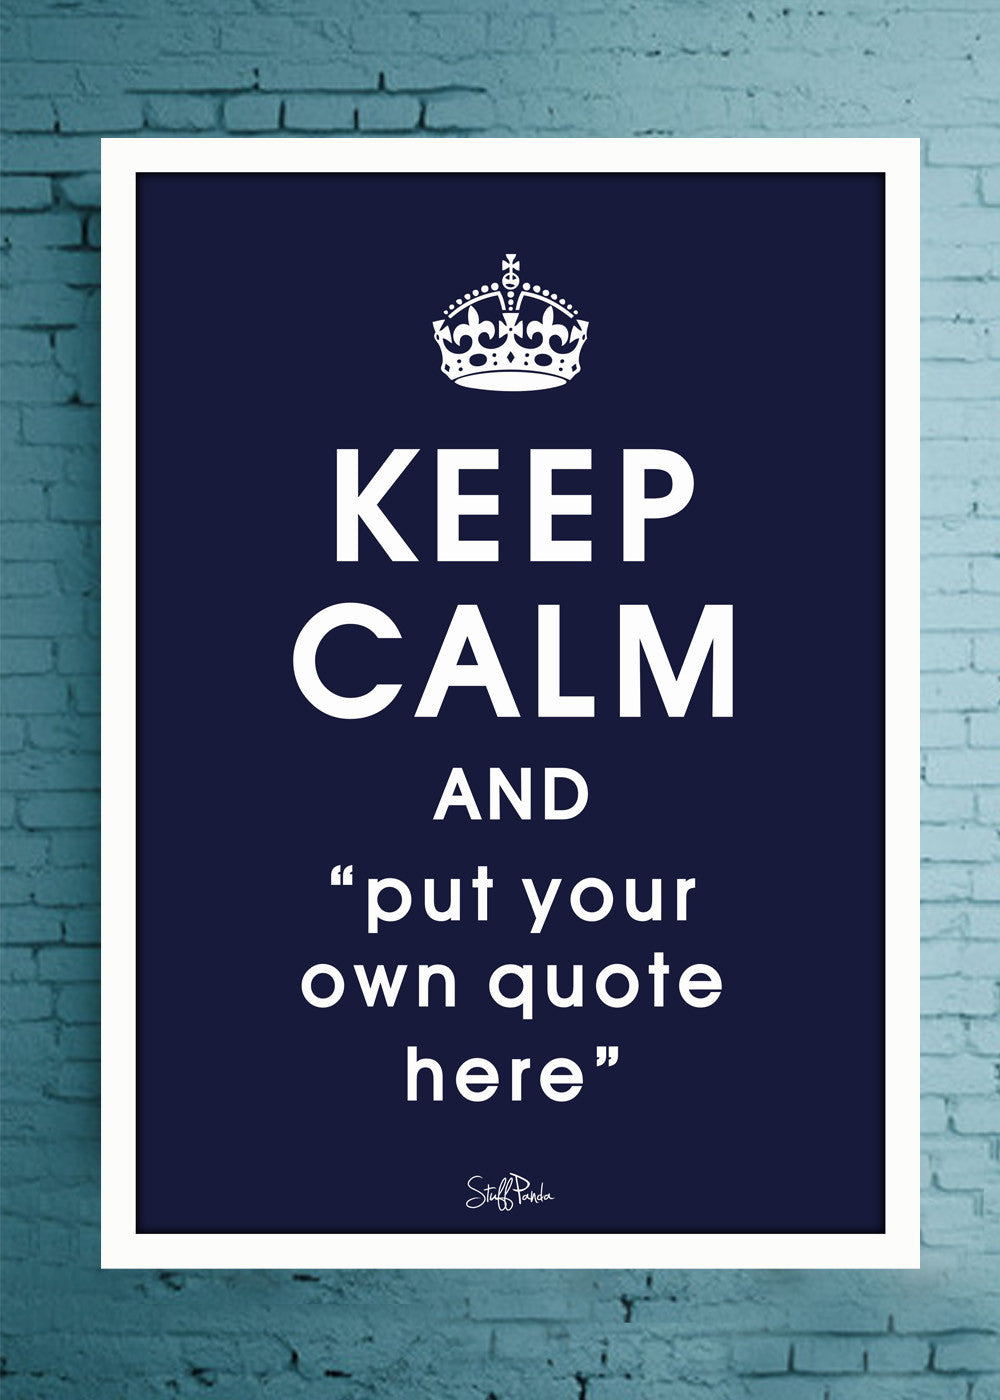 Cool Abstract Customised Keep Calm Wall Glass frame posters Wall art - stuffpanda - 1